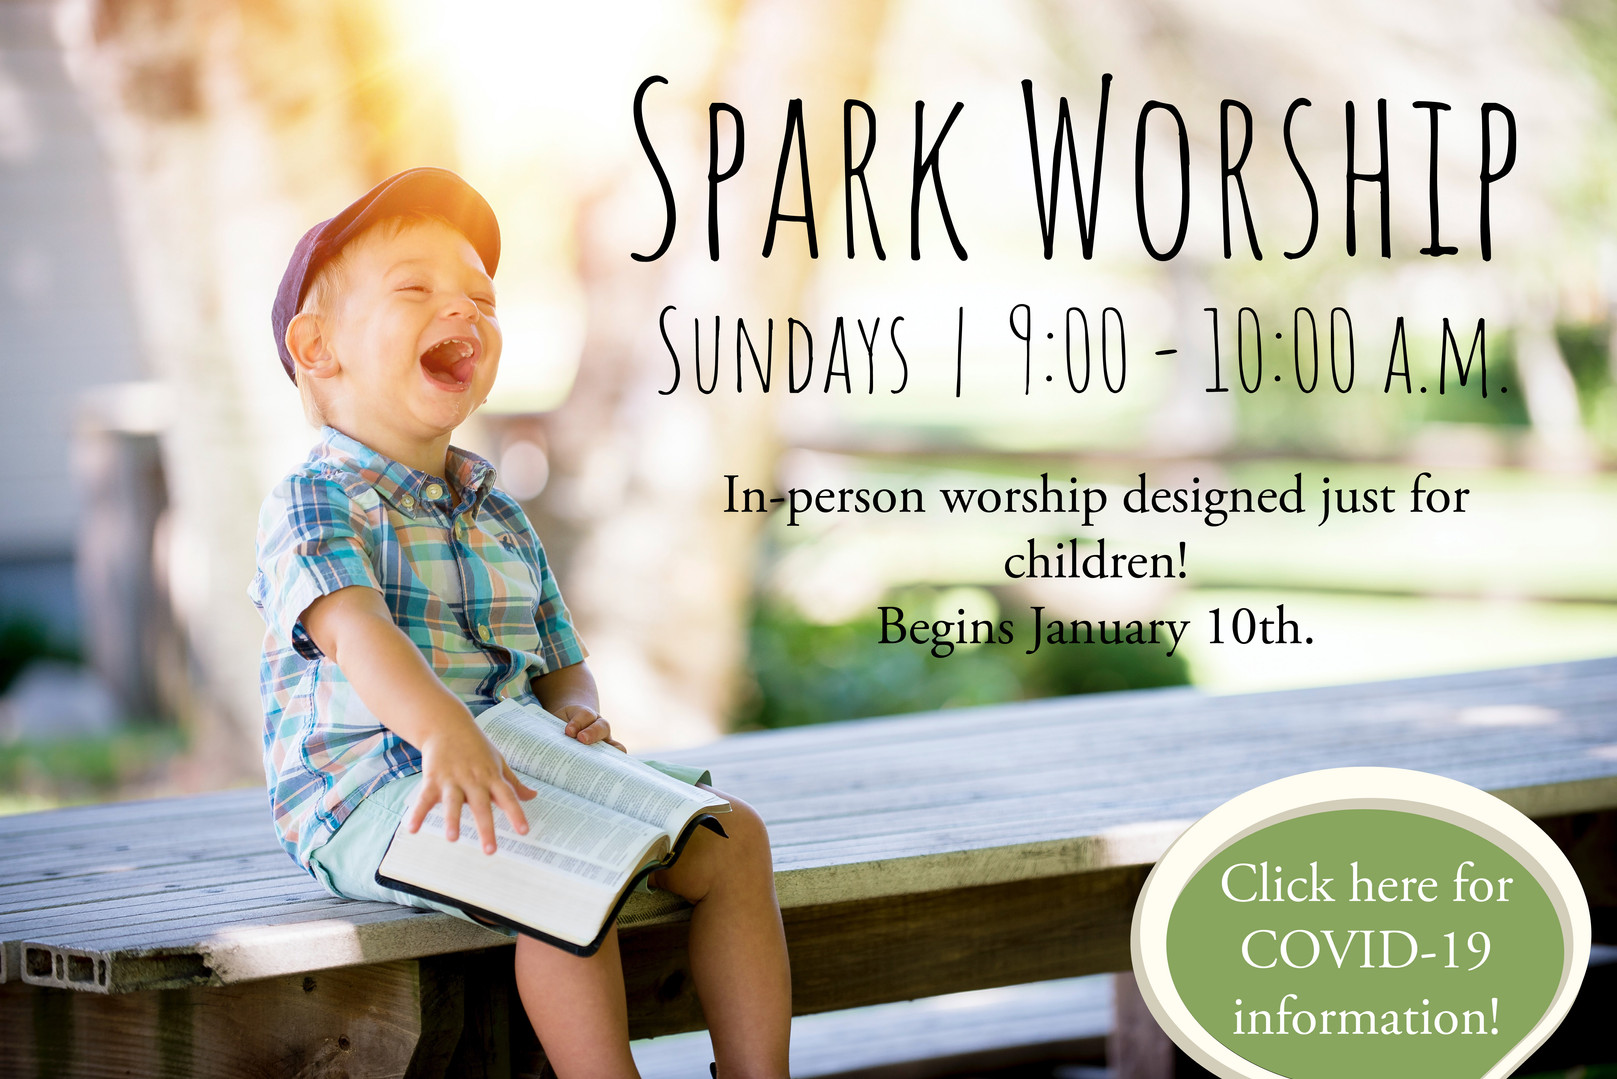 Spark Worship begins January 10th!